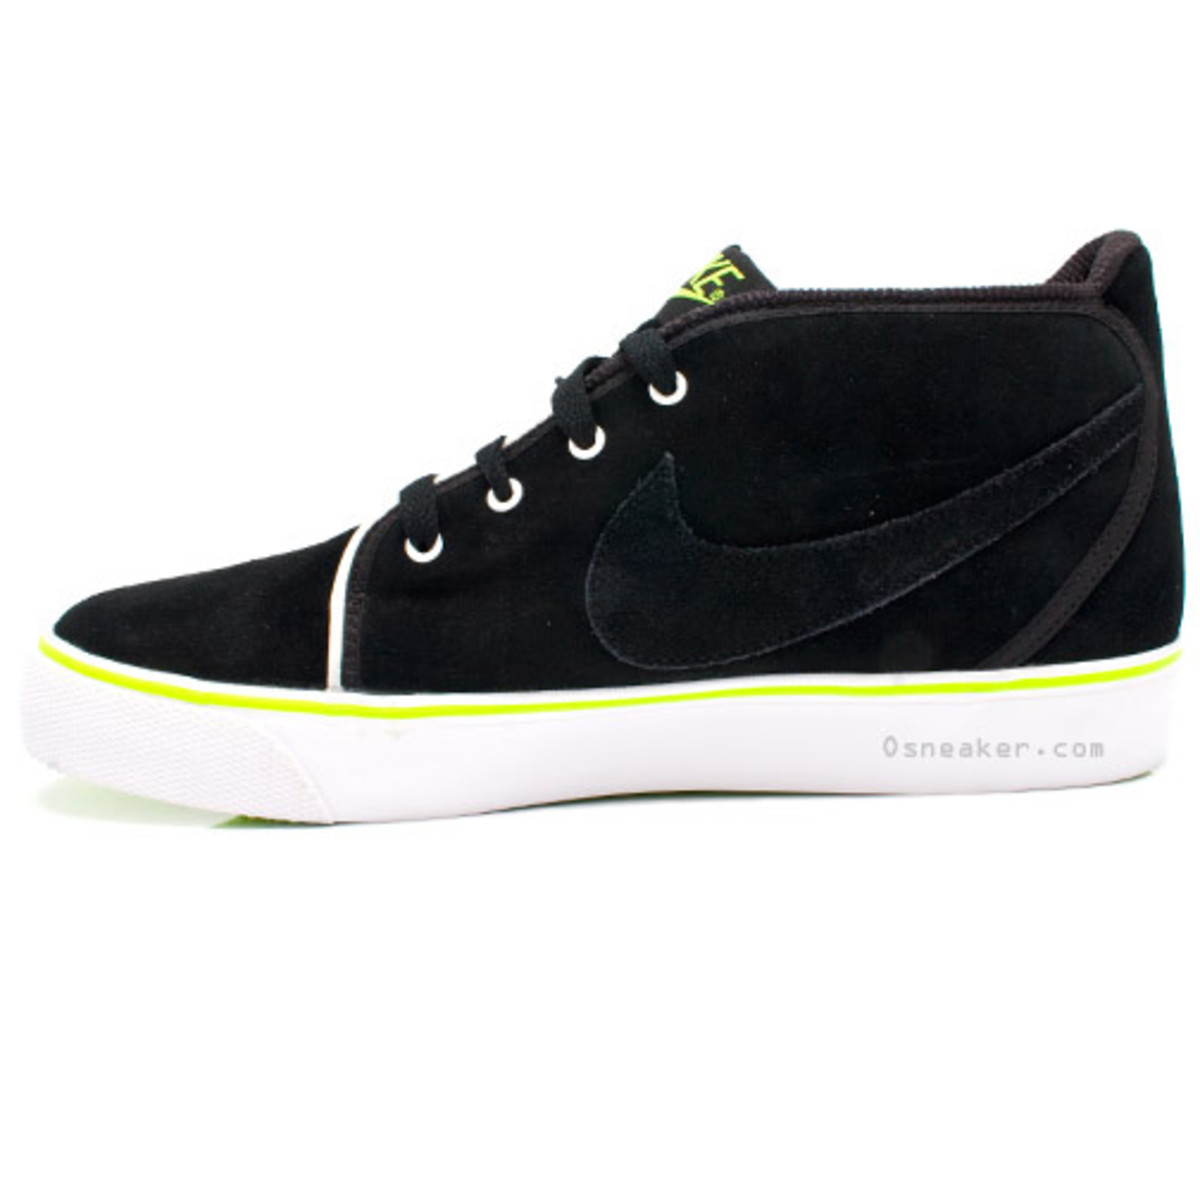 nike_air_toki_black_lime_3